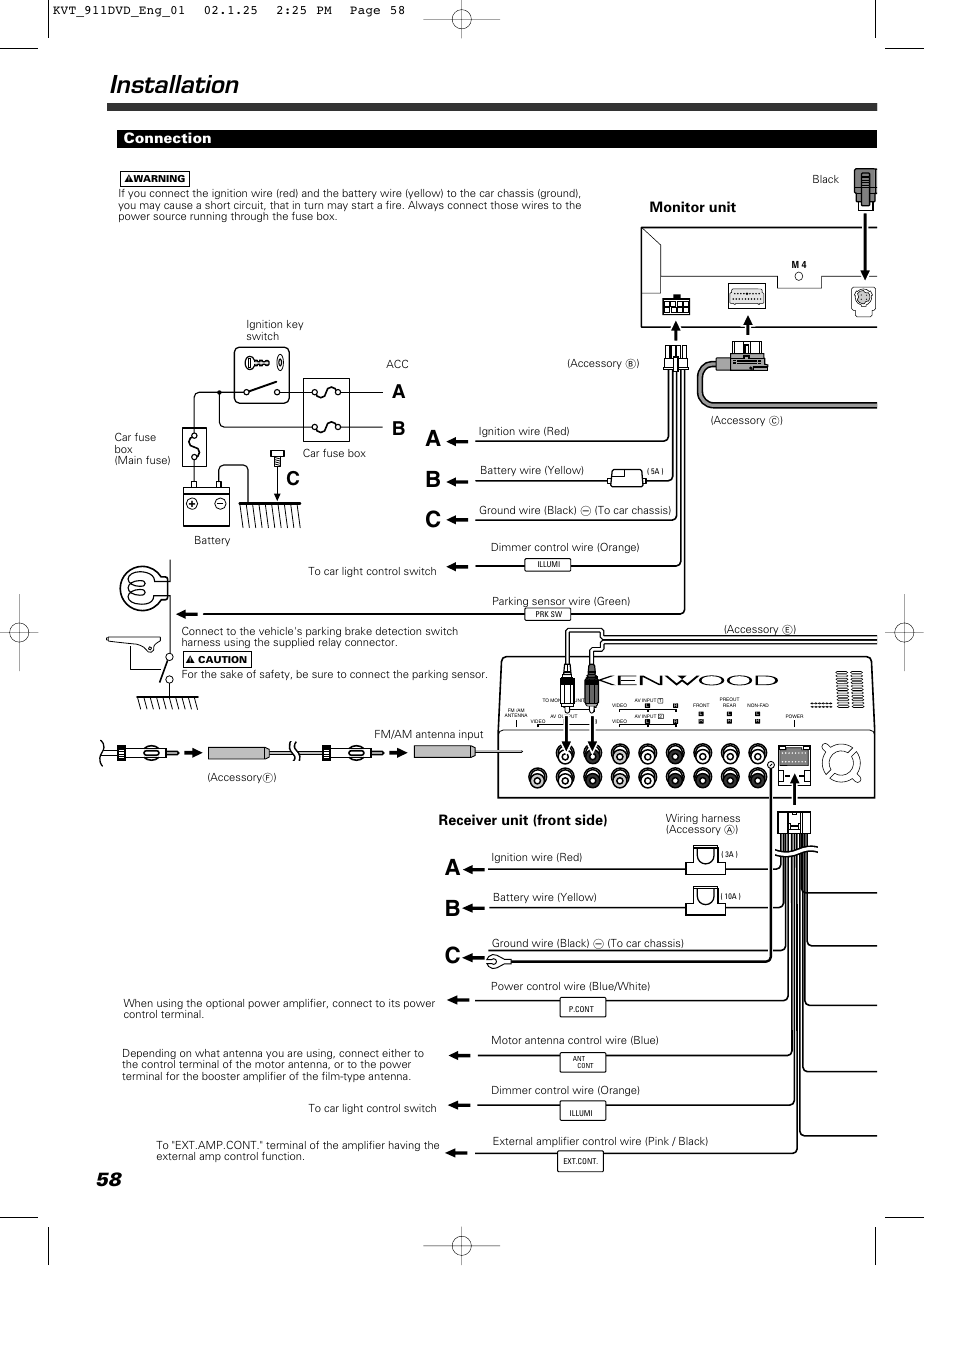 Kenwood Home Stereo Wiring Diagram : Kenwood kvt wiring harness diagram